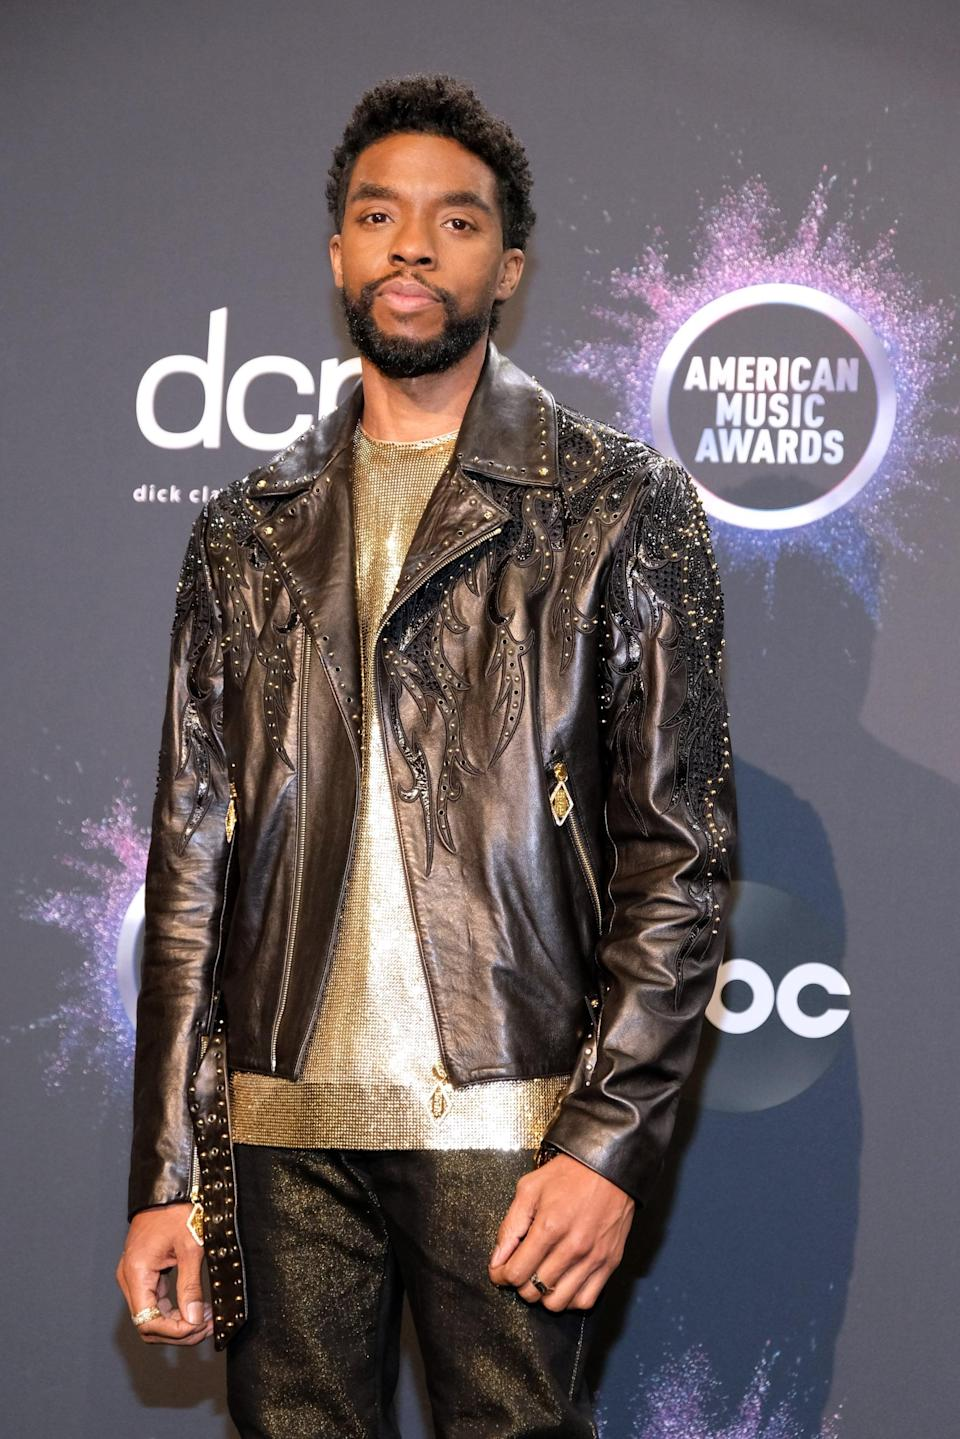 """<p>Chadwick Boseman, best known for his role as T'Challa/<a class=""""link rapid-noclick-resp"""" href=""""https://www.popsugar.com/latest/Black-Panther"""" rel=""""nofollow noopener"""" target=""""_blank"""" data-ylk=""""slk:Black Panther"""">Black Panther</a> in the Marvel Cinematic Universe, <a href=""""https://www.popsugar.com/celebrity/chadwick-boseman-dead-47738424"""" class=""""link rapid-noclick-resp"""" rel=""""nofollow noopener"""" target=""""_blank"""" data-ylk=""""slk:died at age 43"""">died at age 43</a> in August after a four-year battle with colon cancer.</p>"""